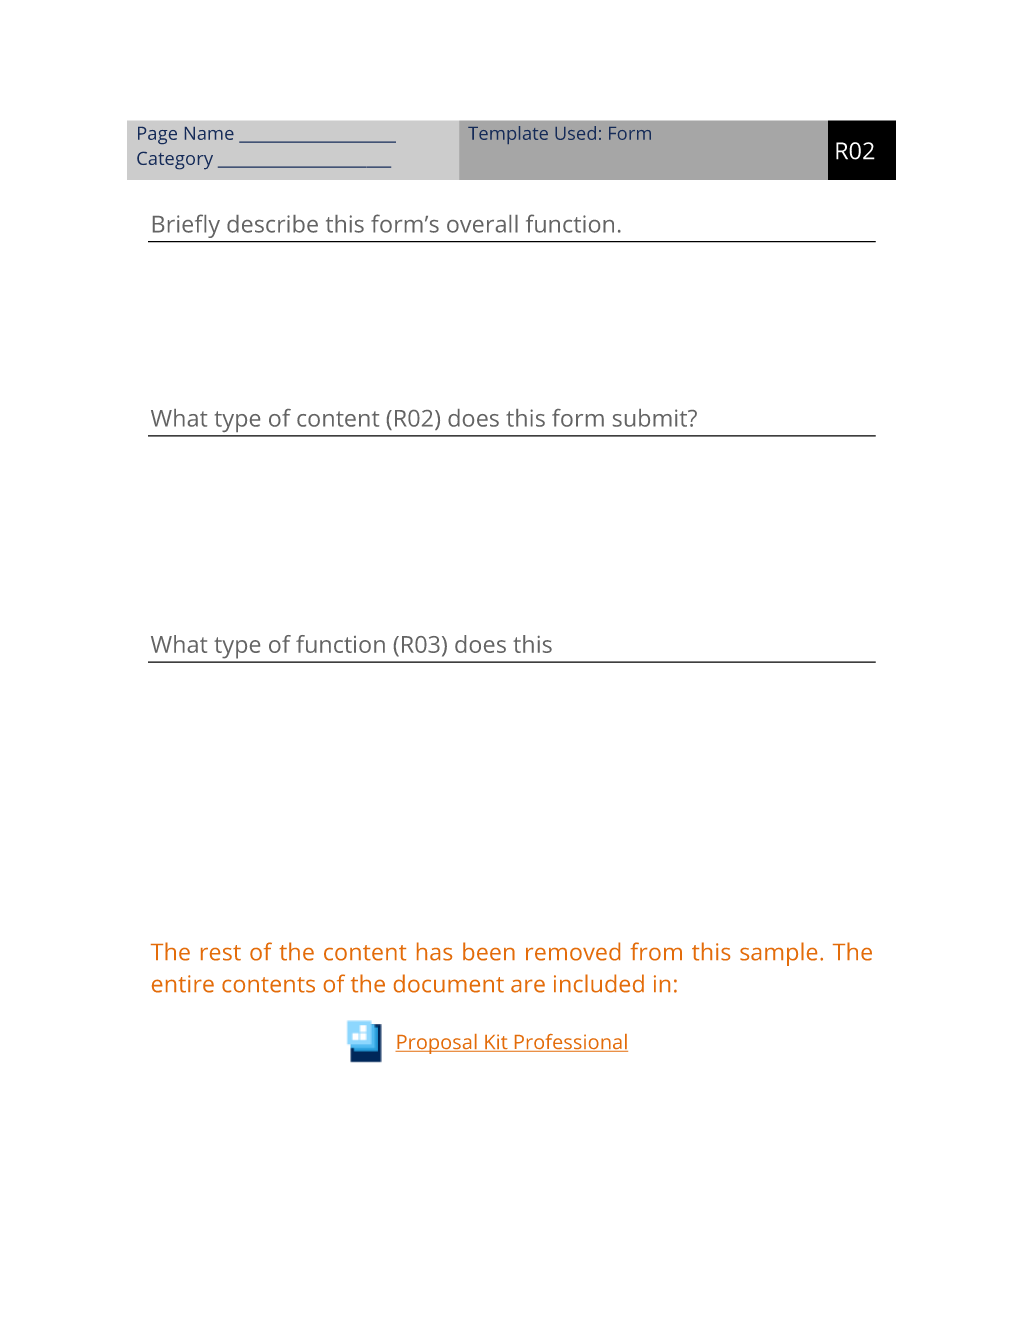 Describe User Controlled Content Worksheet R02